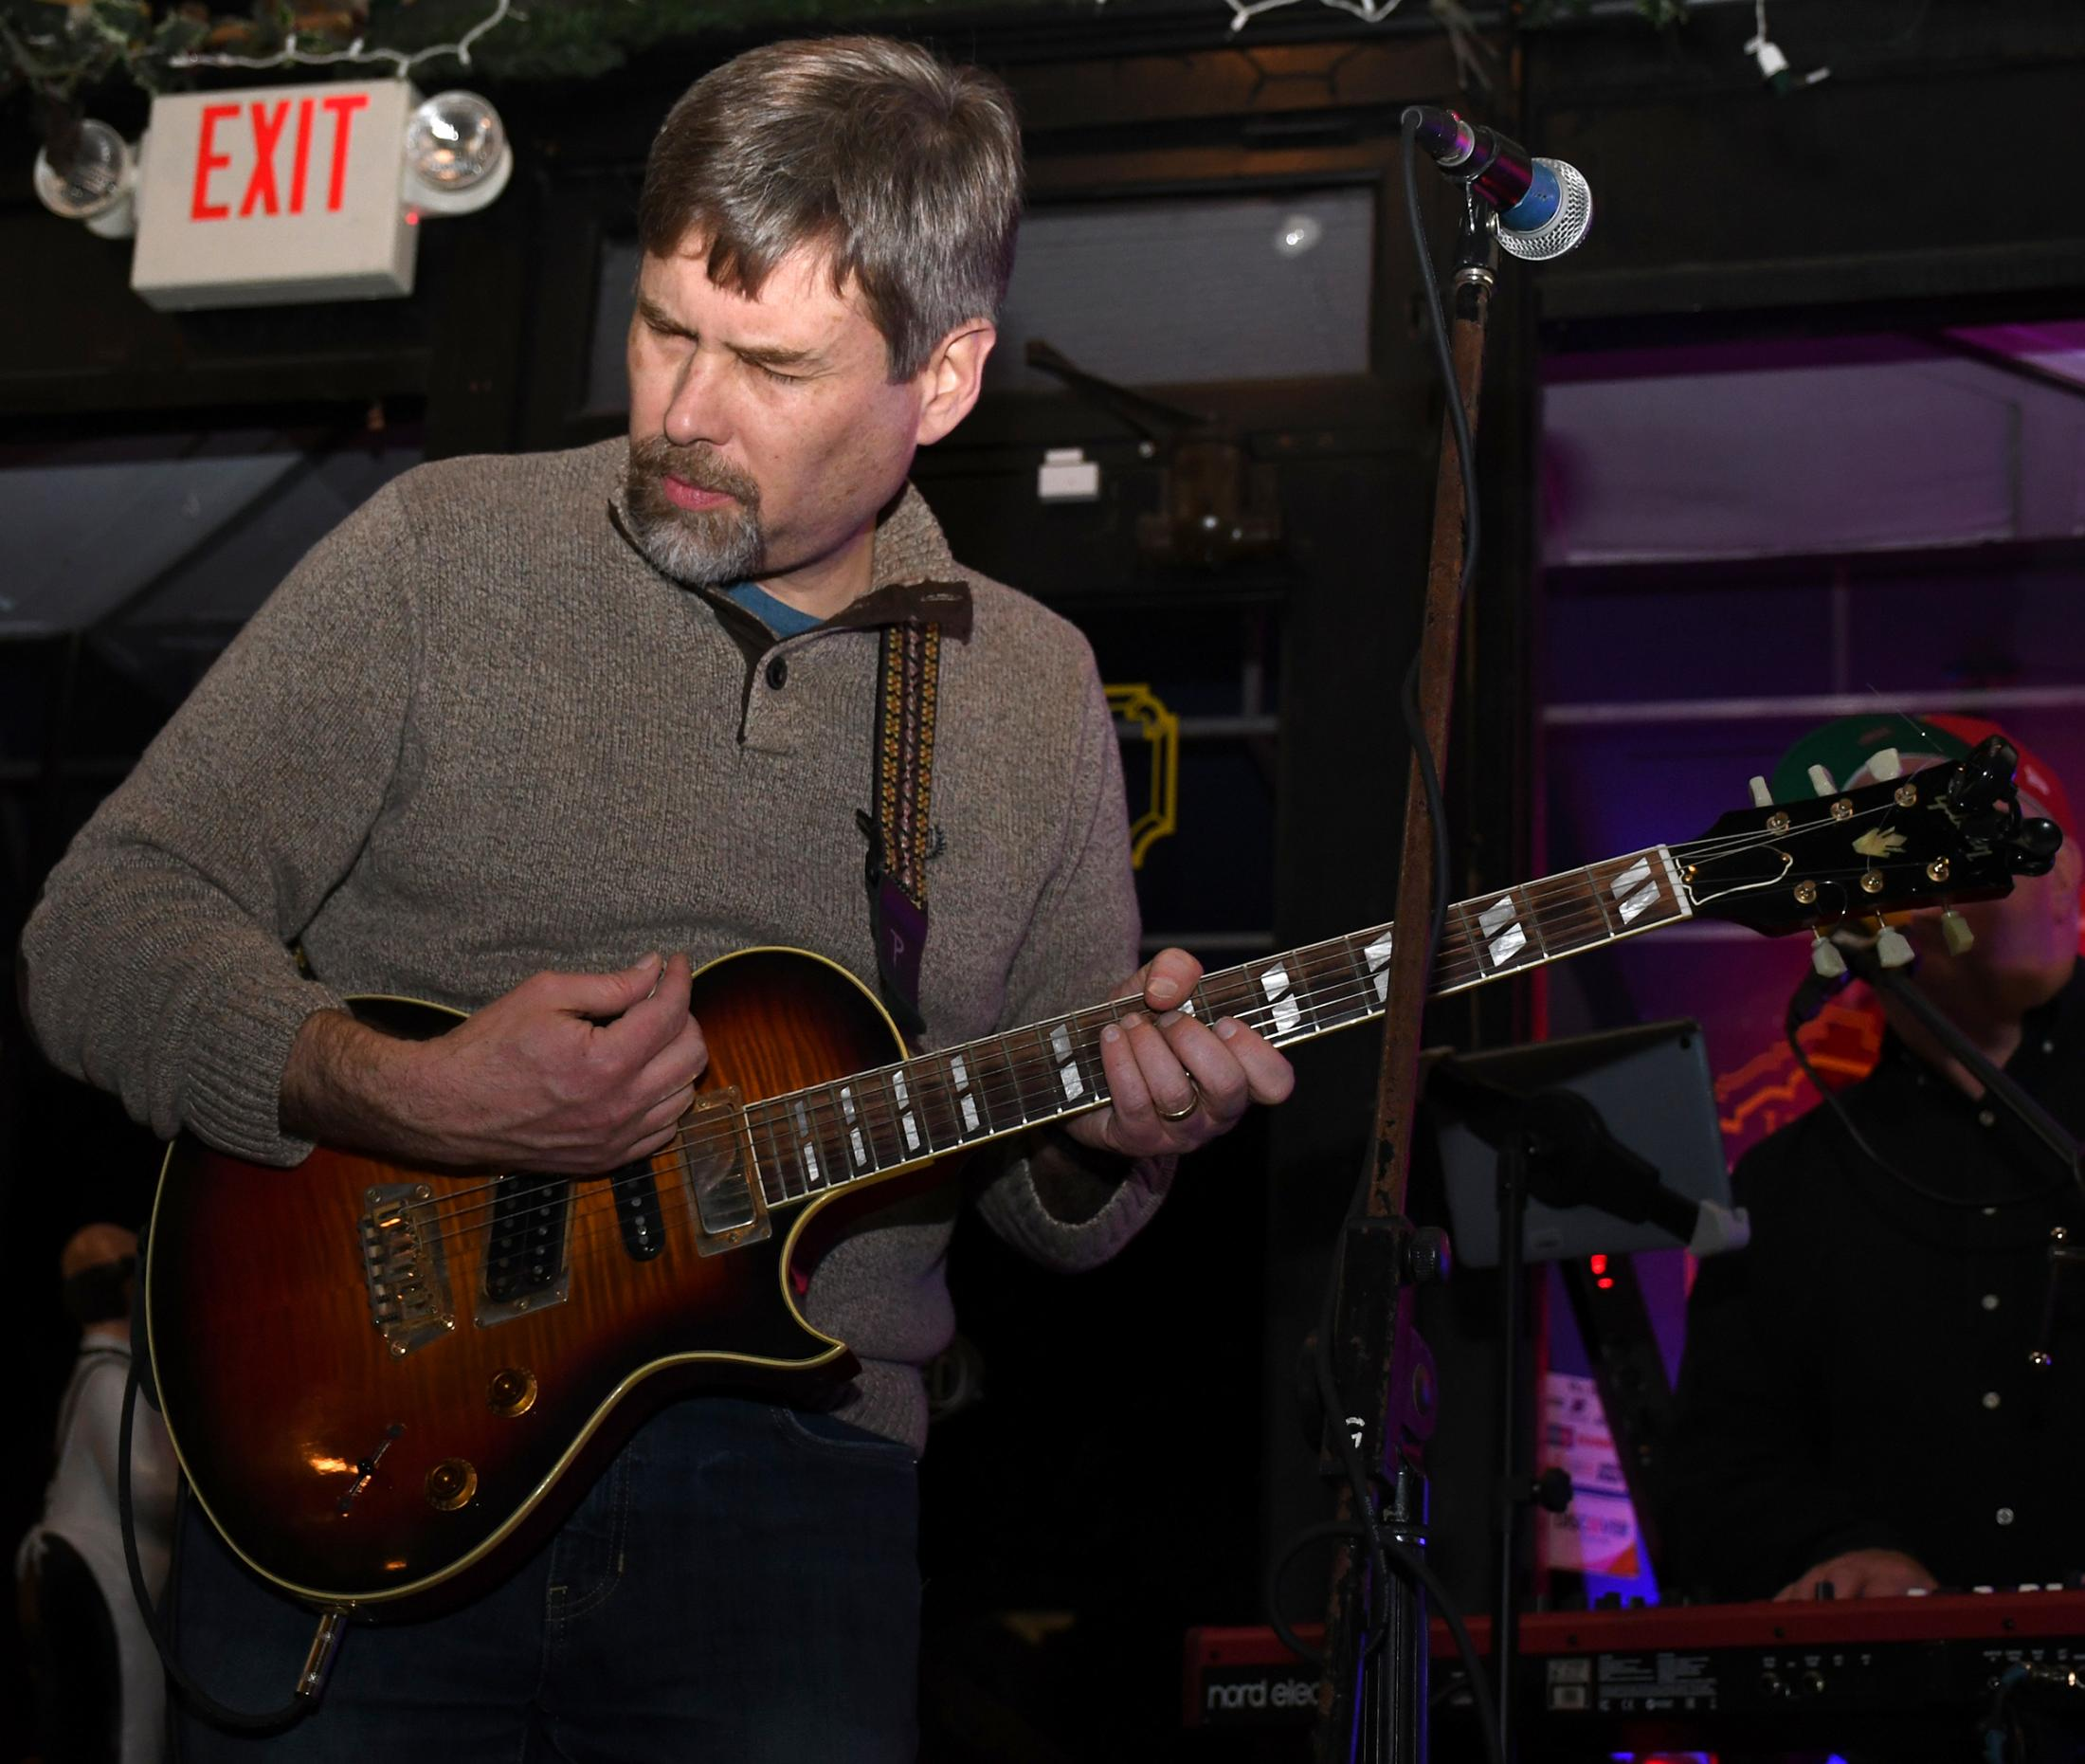 """Larsen plays the guitar at Flyover Country's concert at the Rocheport General Store on Friday, Nov. 15, 2019, in Rocheport, Missouri. The store is tiny for a rock concert, that said, the musicians could not play as loud as normally, """"The volume we played at the rehearsal is going to be the same that we are going to do here, it's a shame that we cannot use our full potential,"""" said Larsen."""